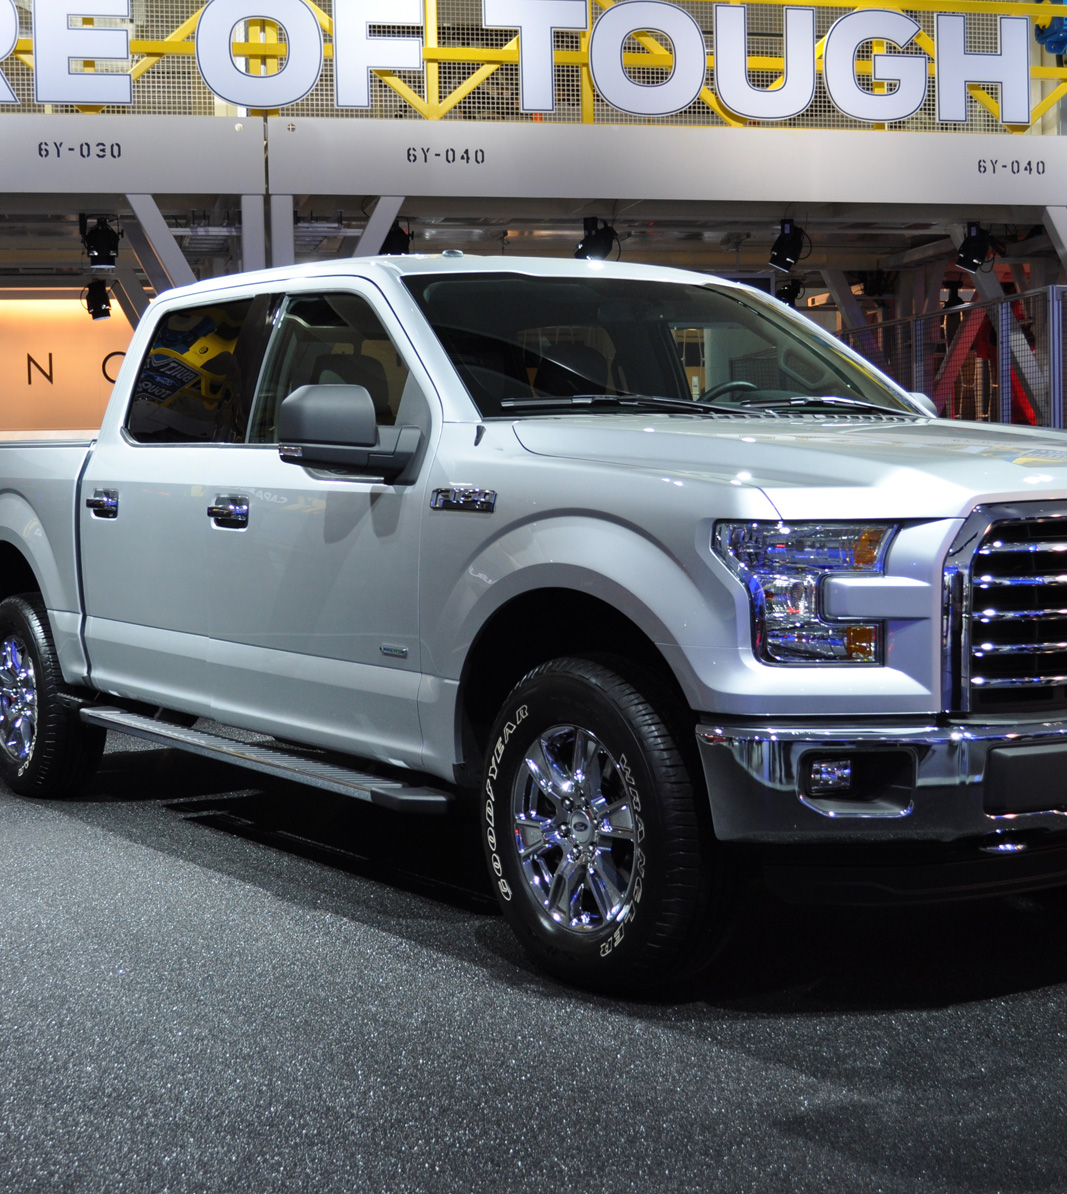 Ford F-150 goes for high-tech evolution